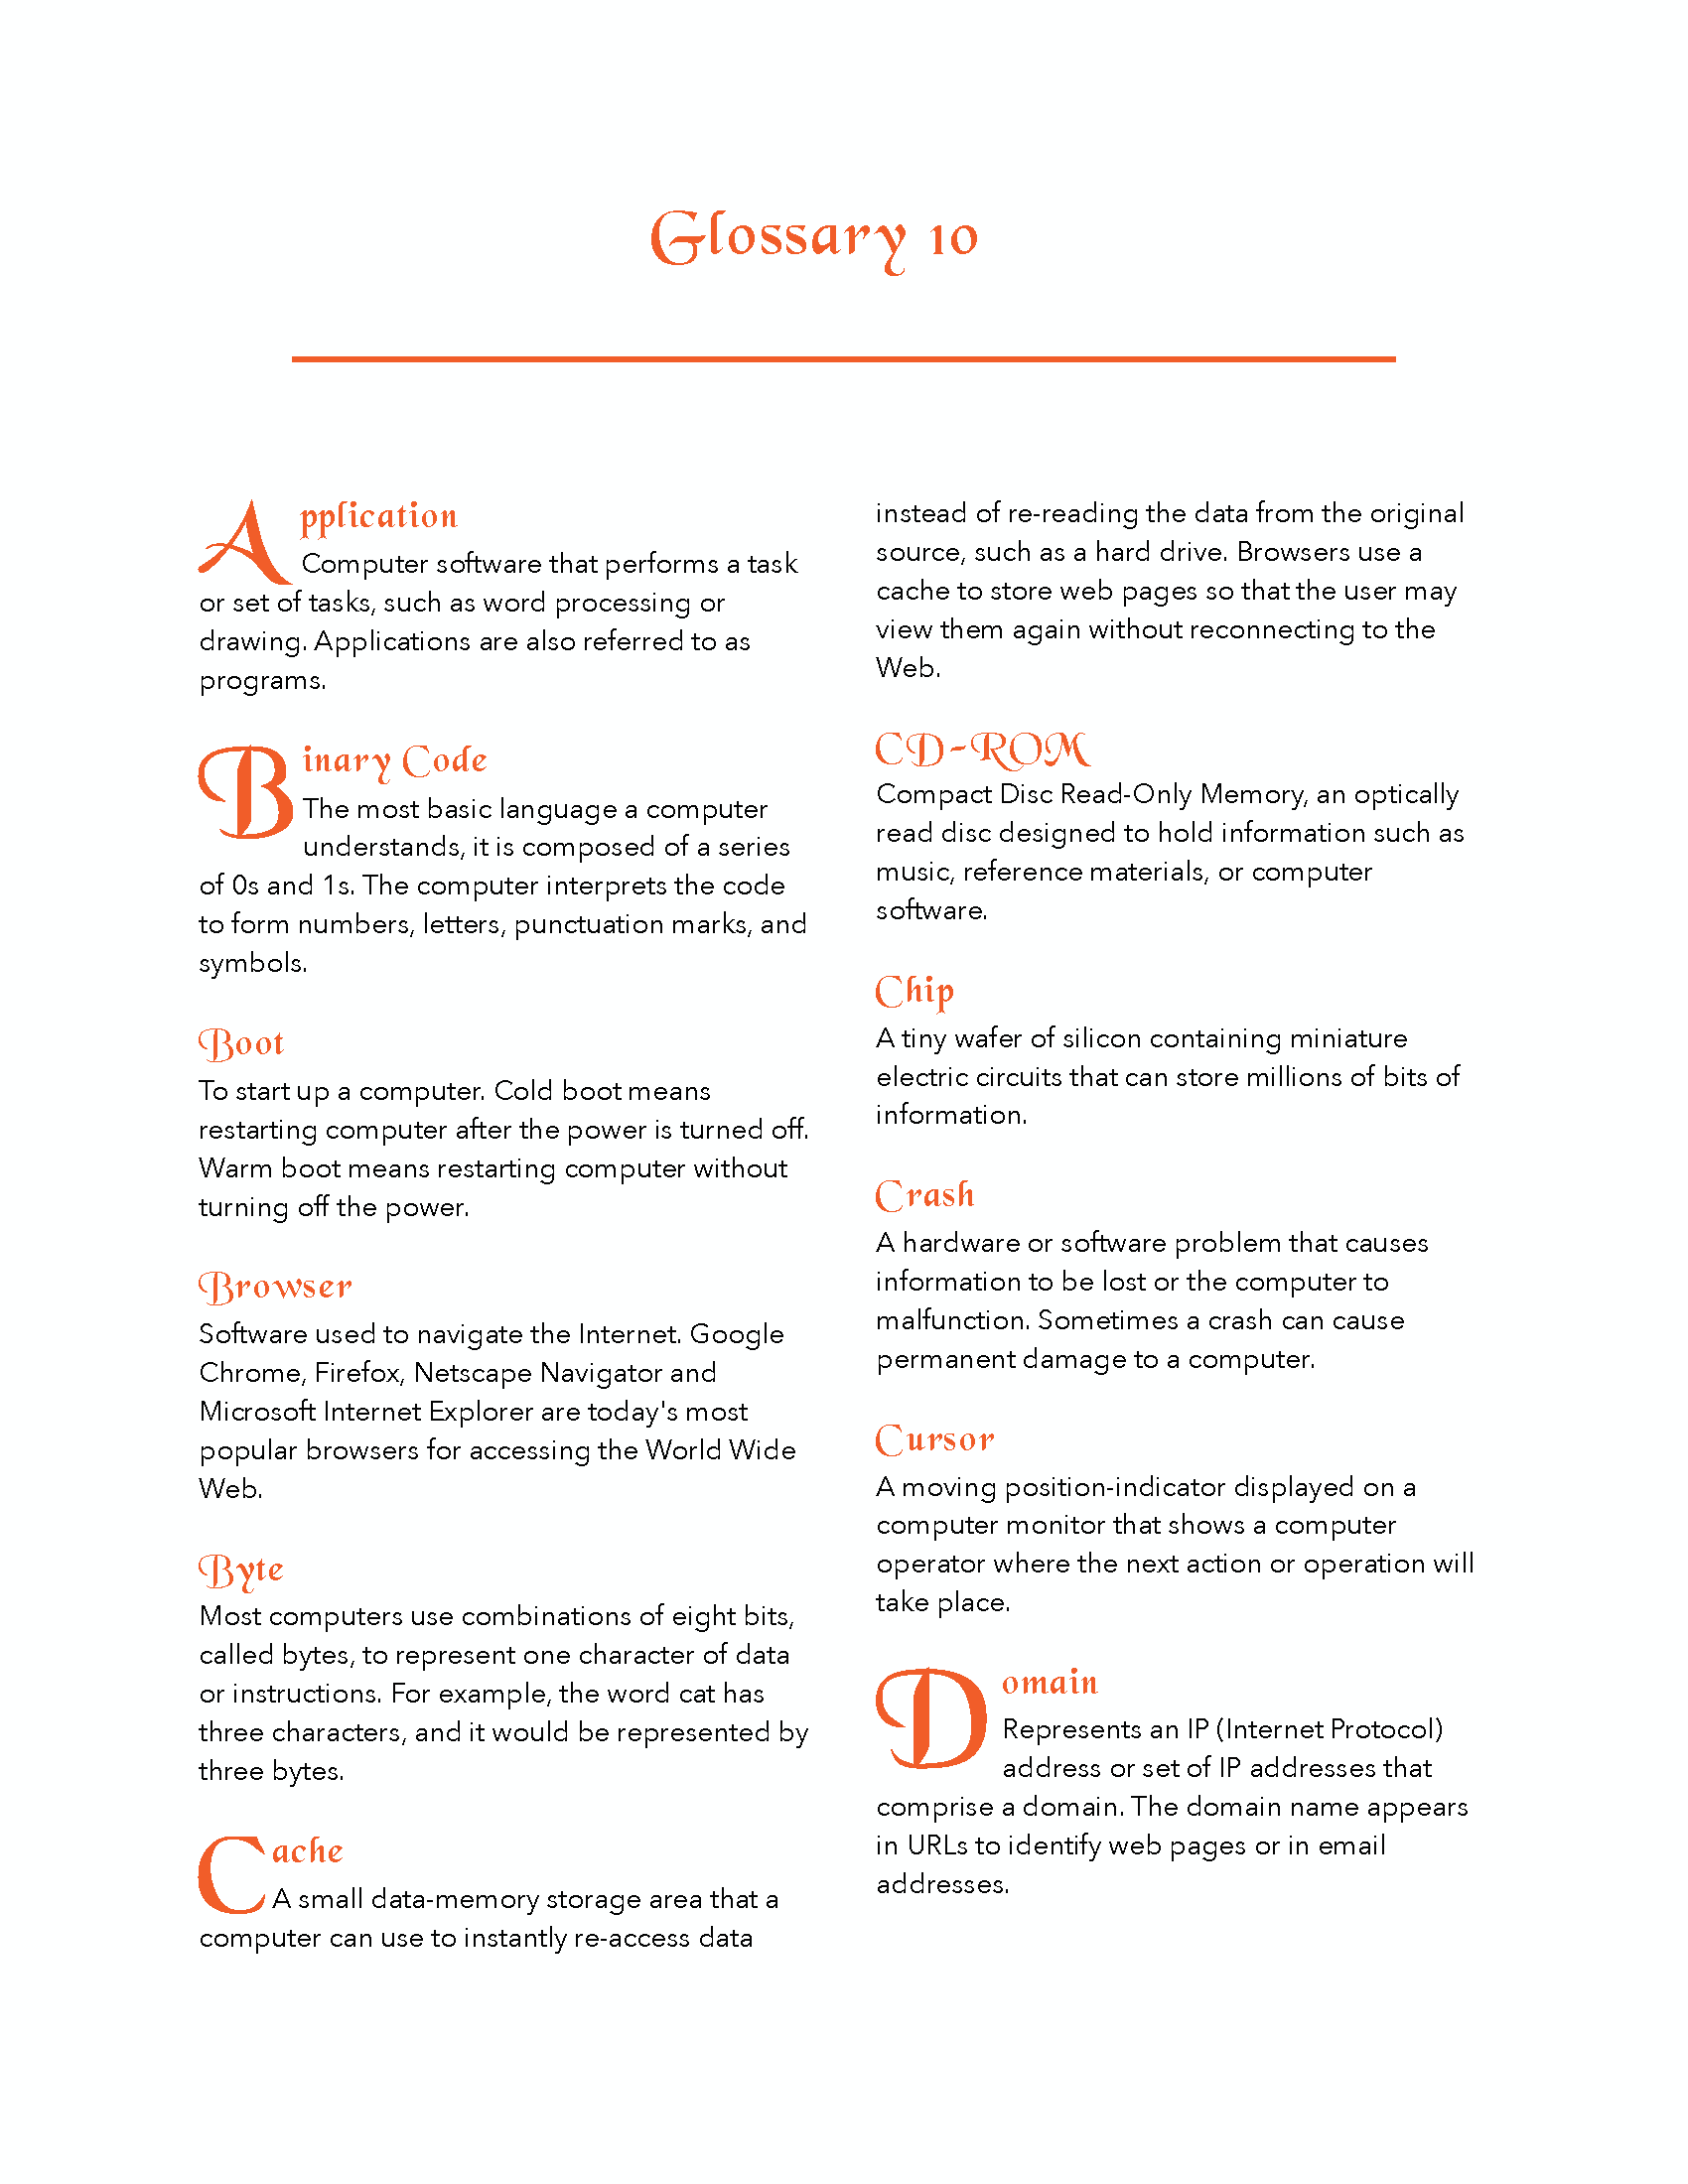 Glossary Template Page 10